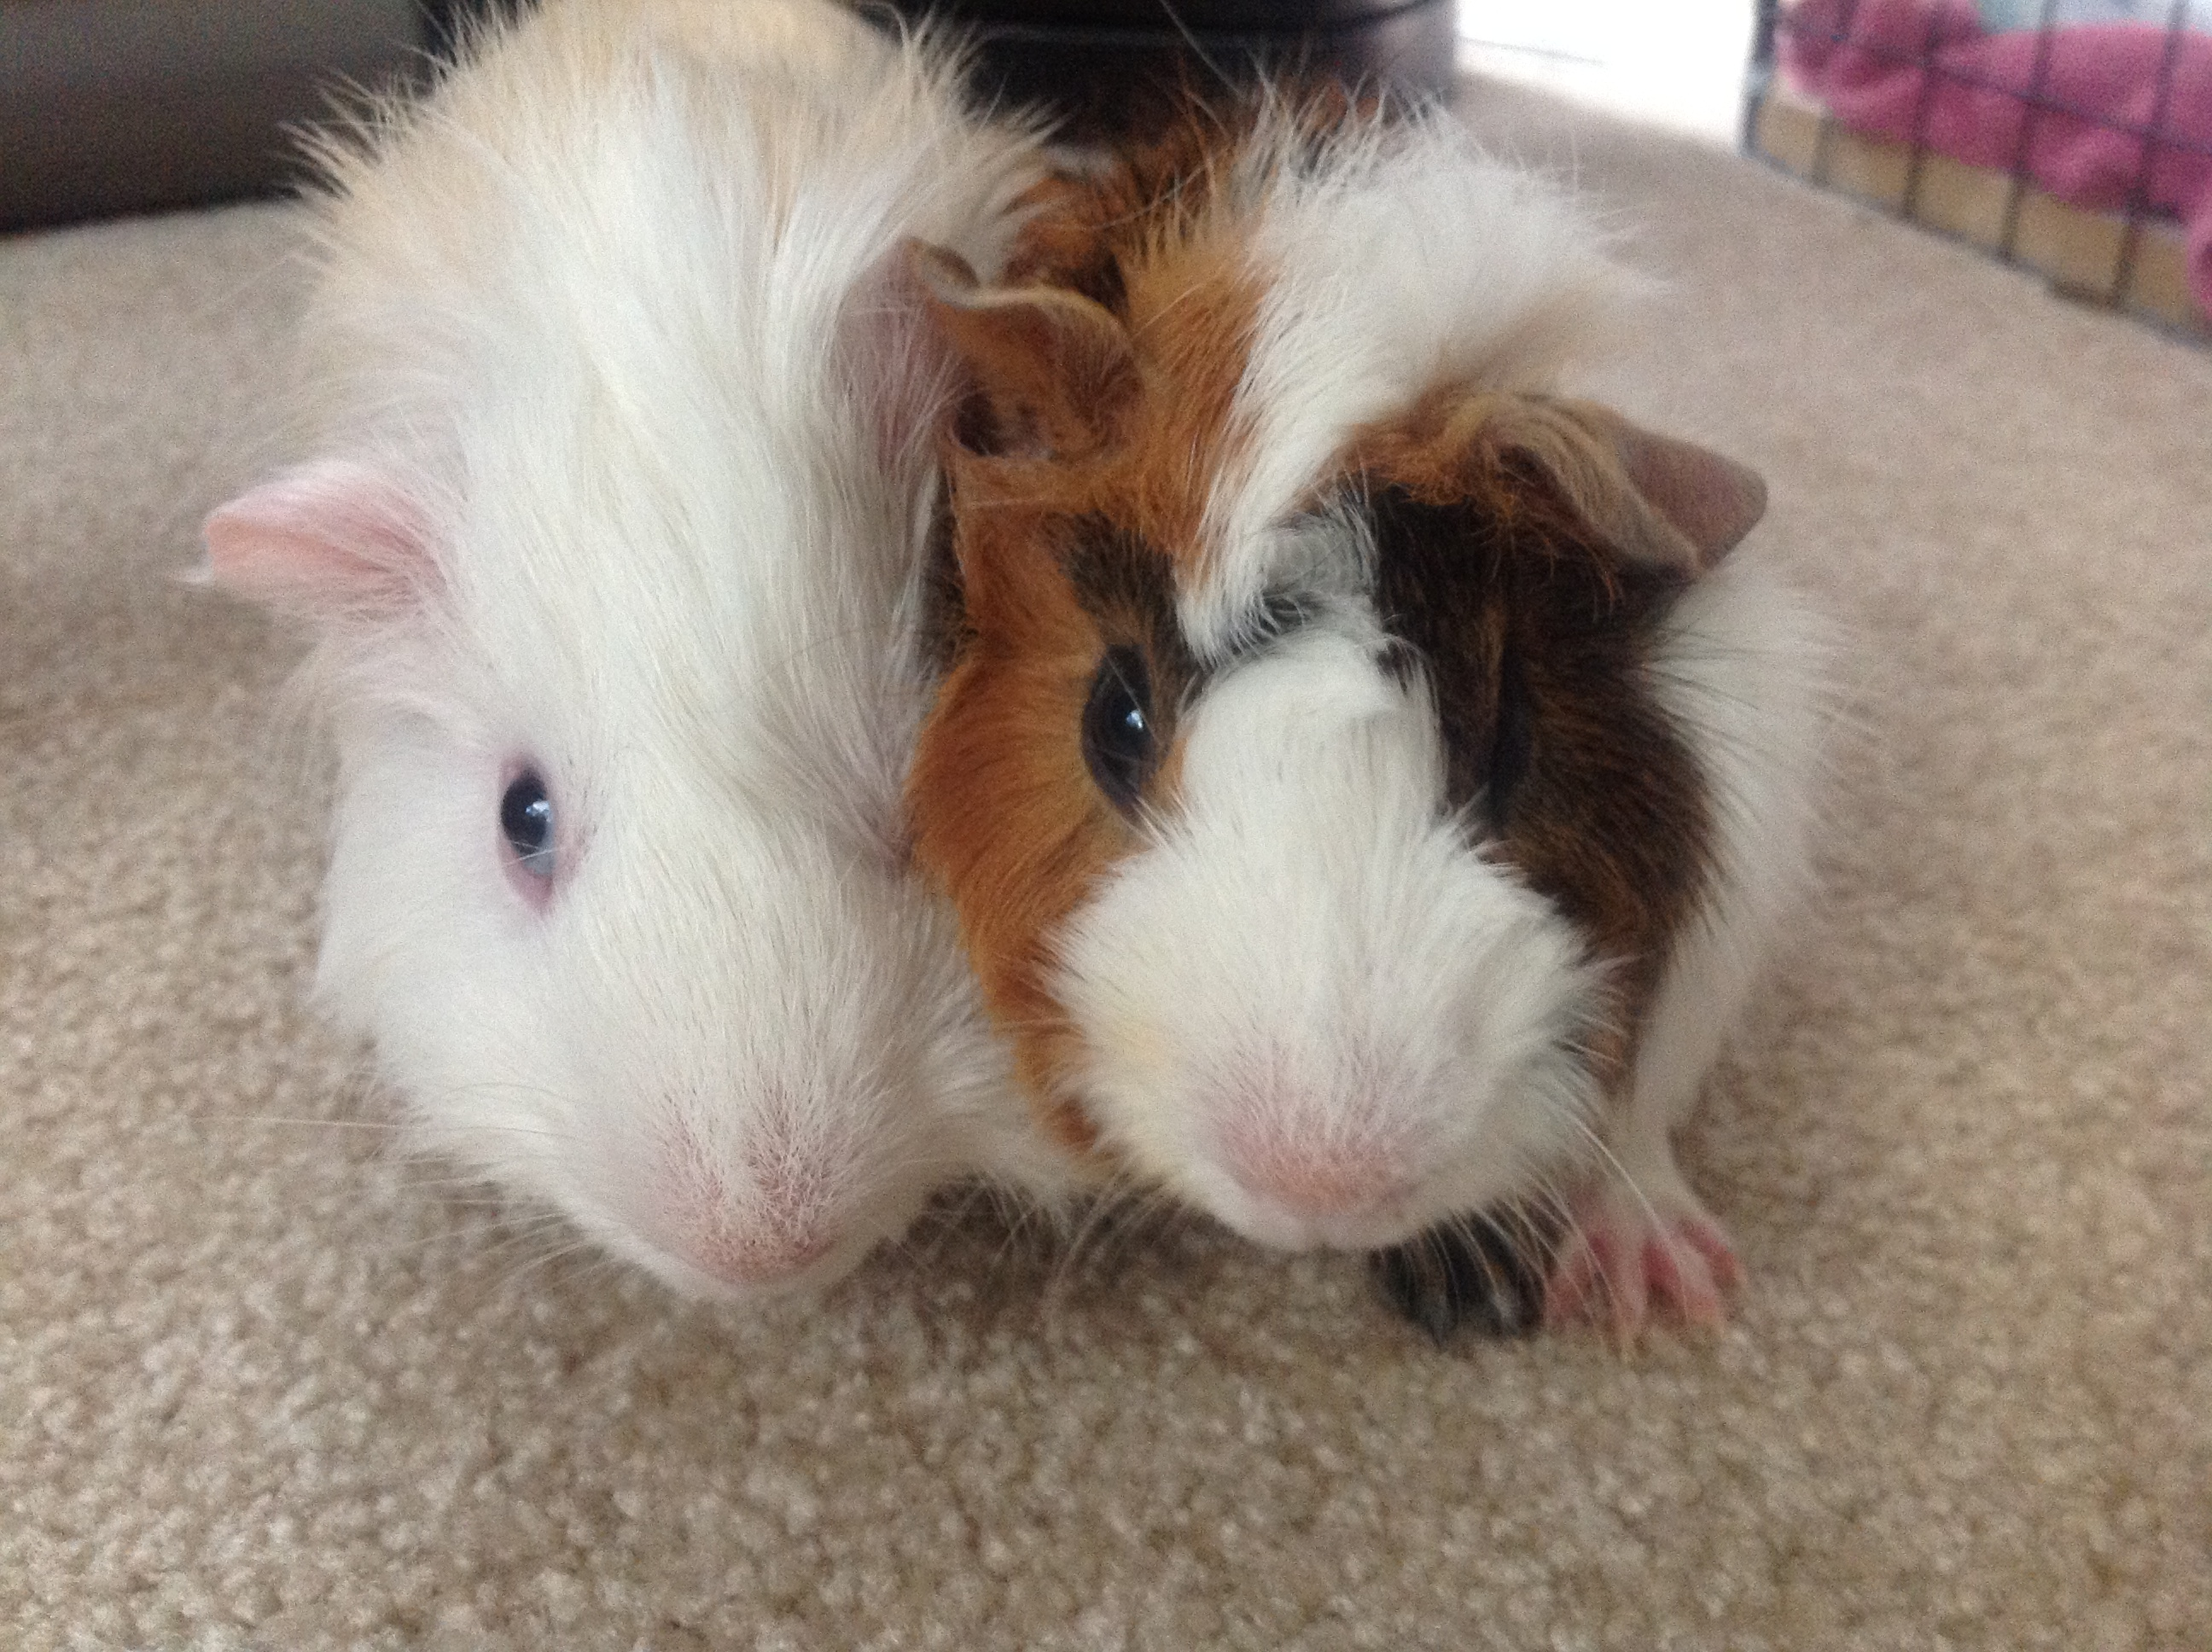 THEY CALL ME GUINEA PIG WHISPERER MOMWHEARINGLOSS